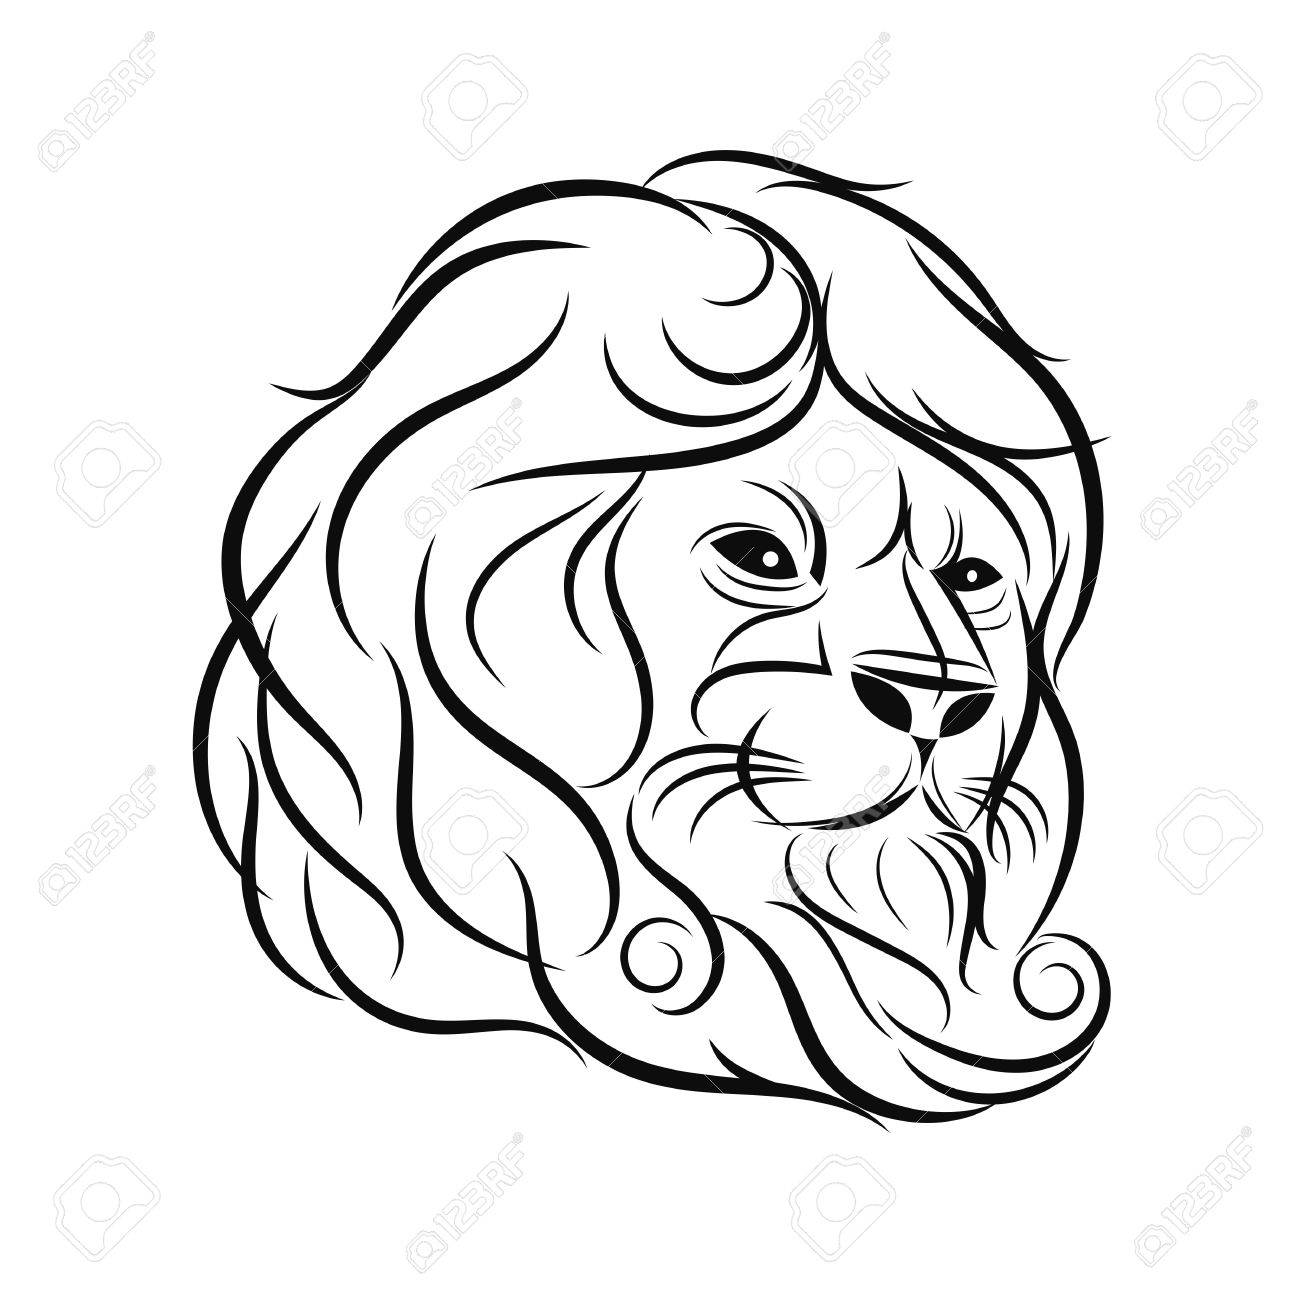 1300x1300 Hand Draw Lion Head Outline Design On Gray Background Royalty Free